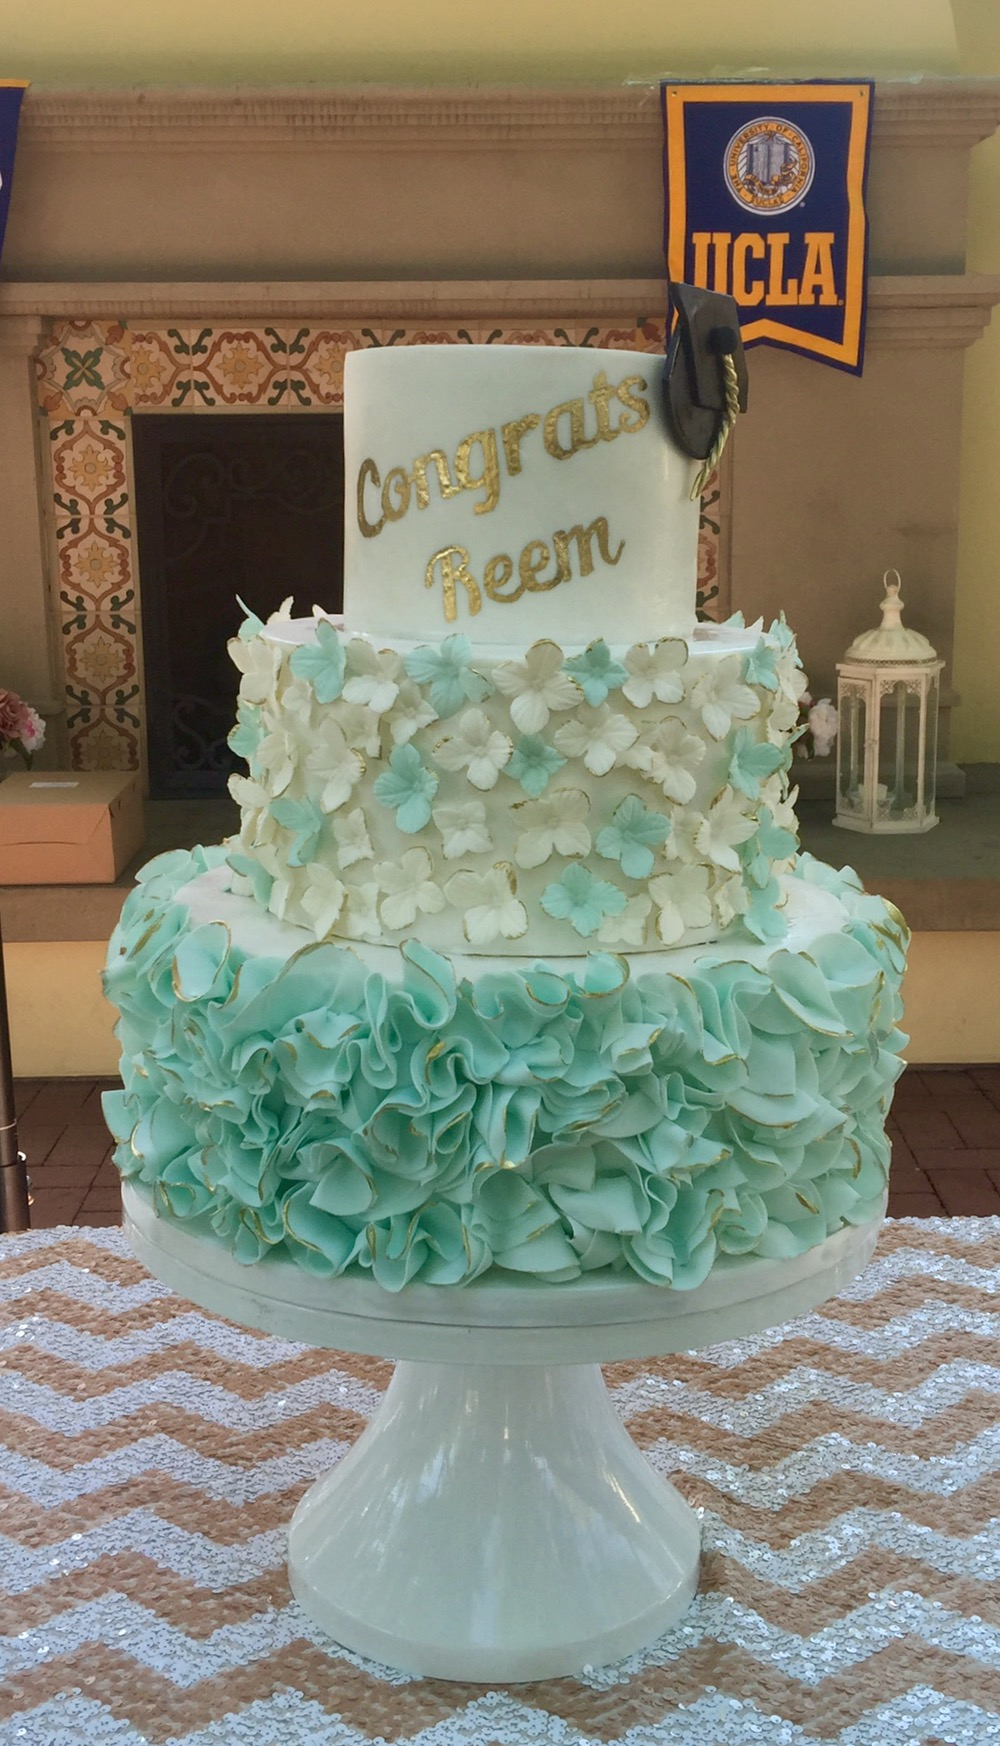 Birthday and Celebration Cakes in Orange County and Los Angeles